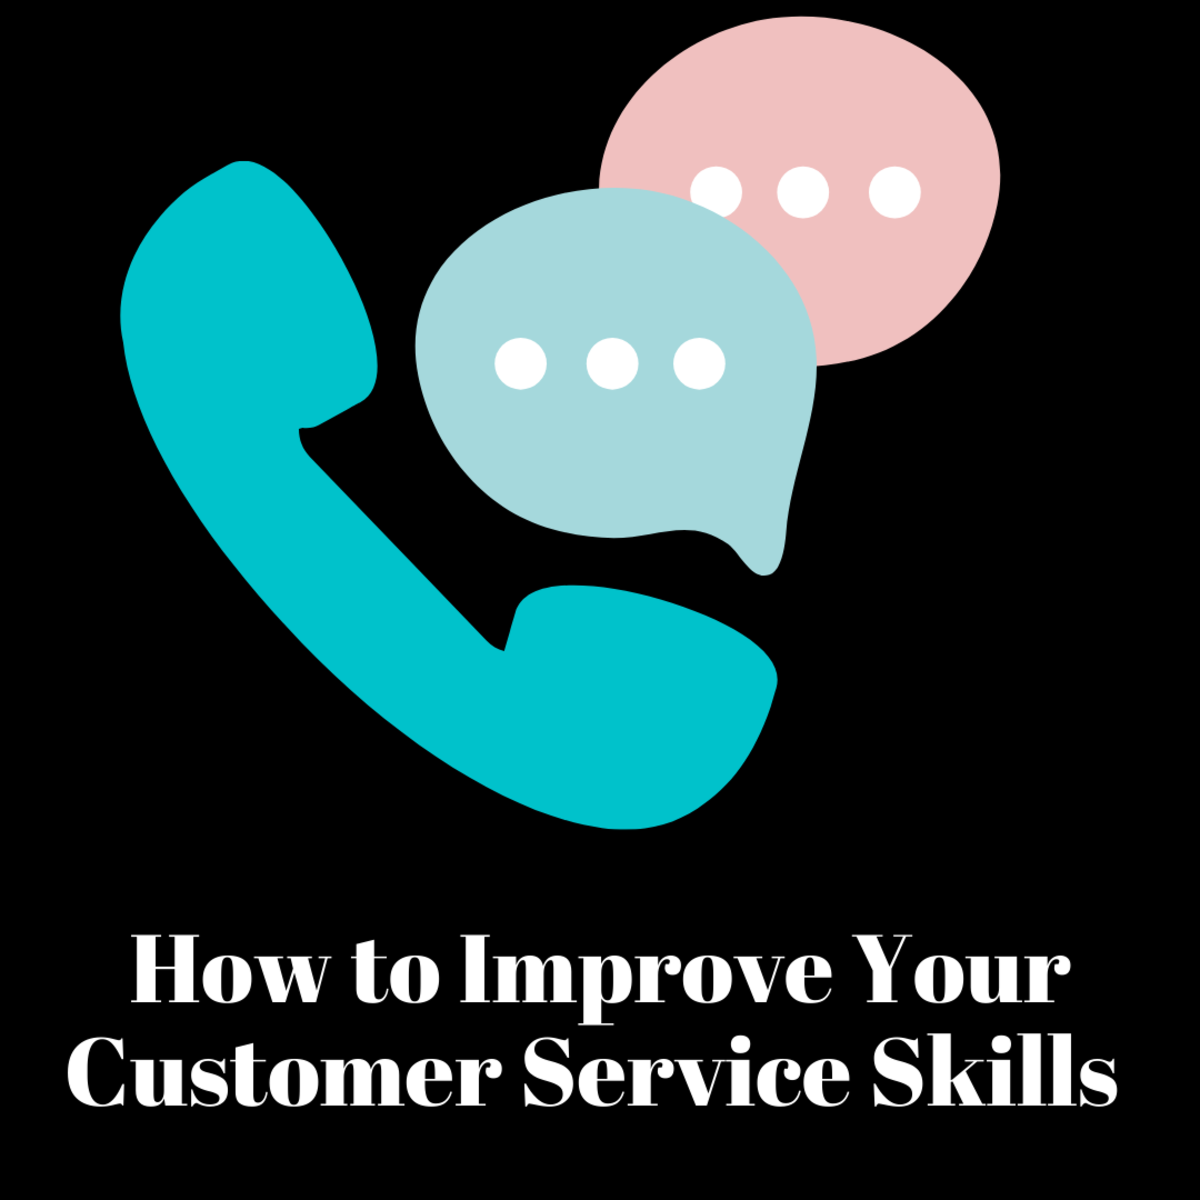 Customer service can be hard. Read on to learn some useful tips and tricks.